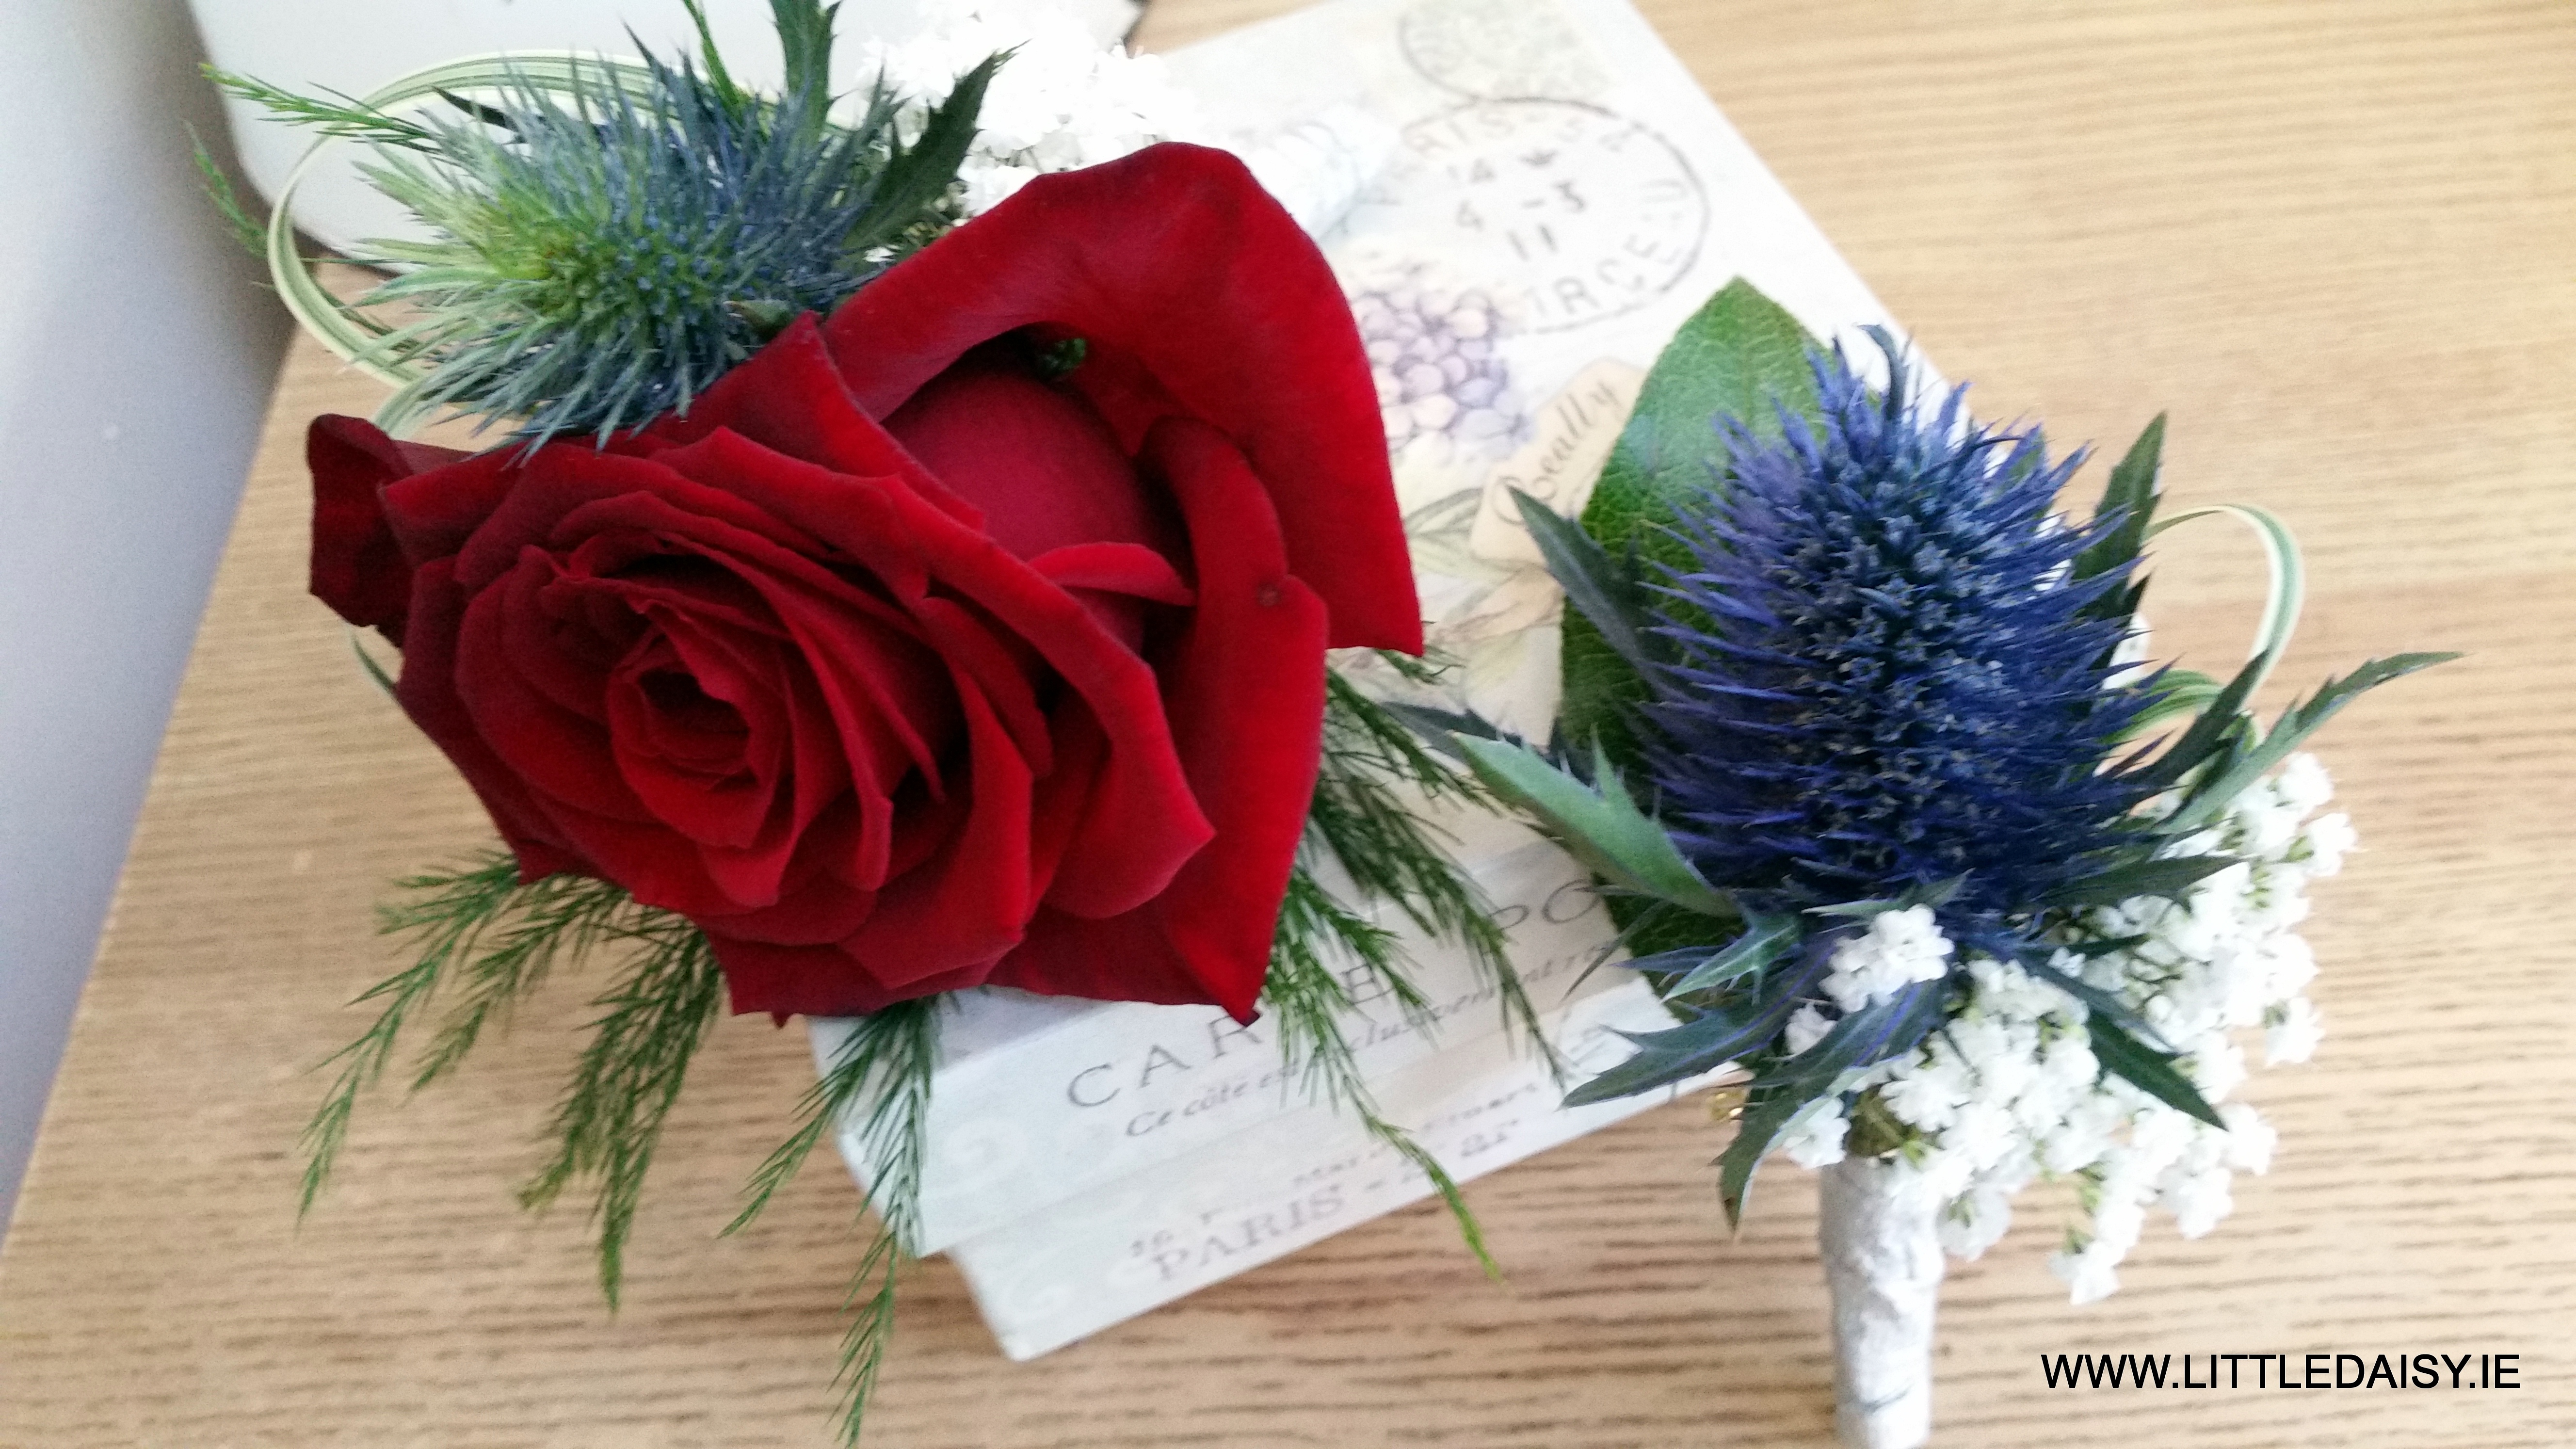 Red rose and blue thistle